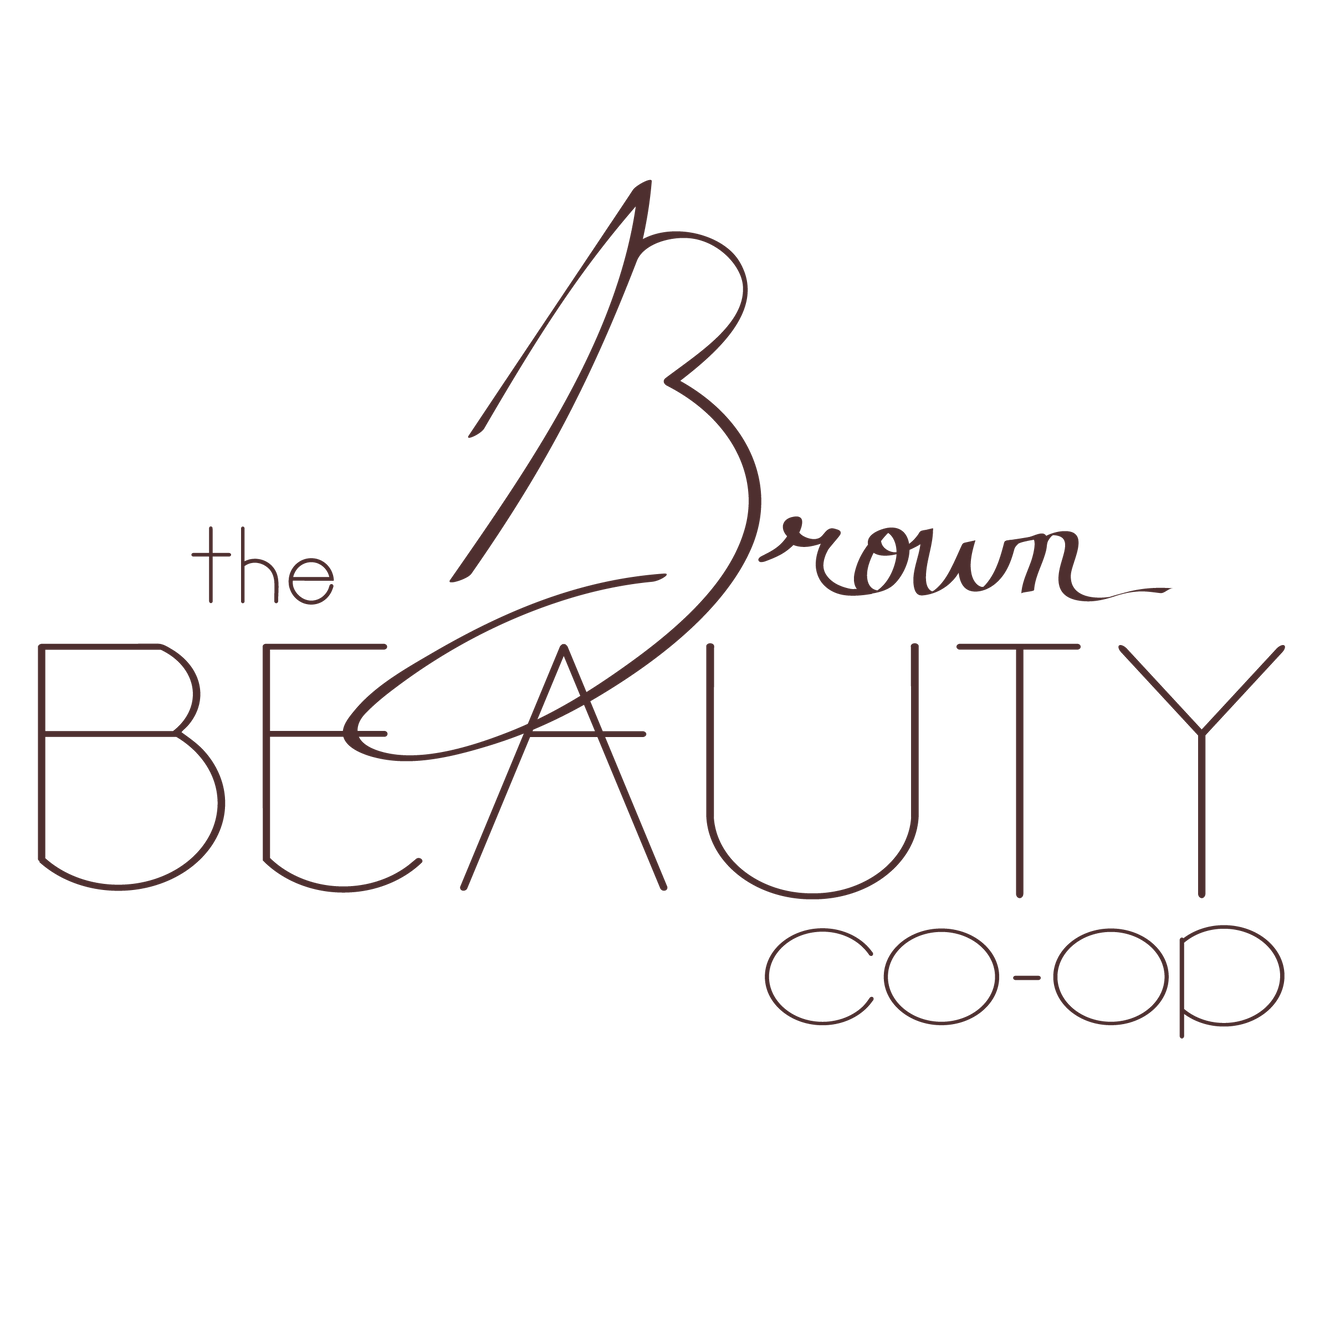 Brown Beauty Co-Op | Home